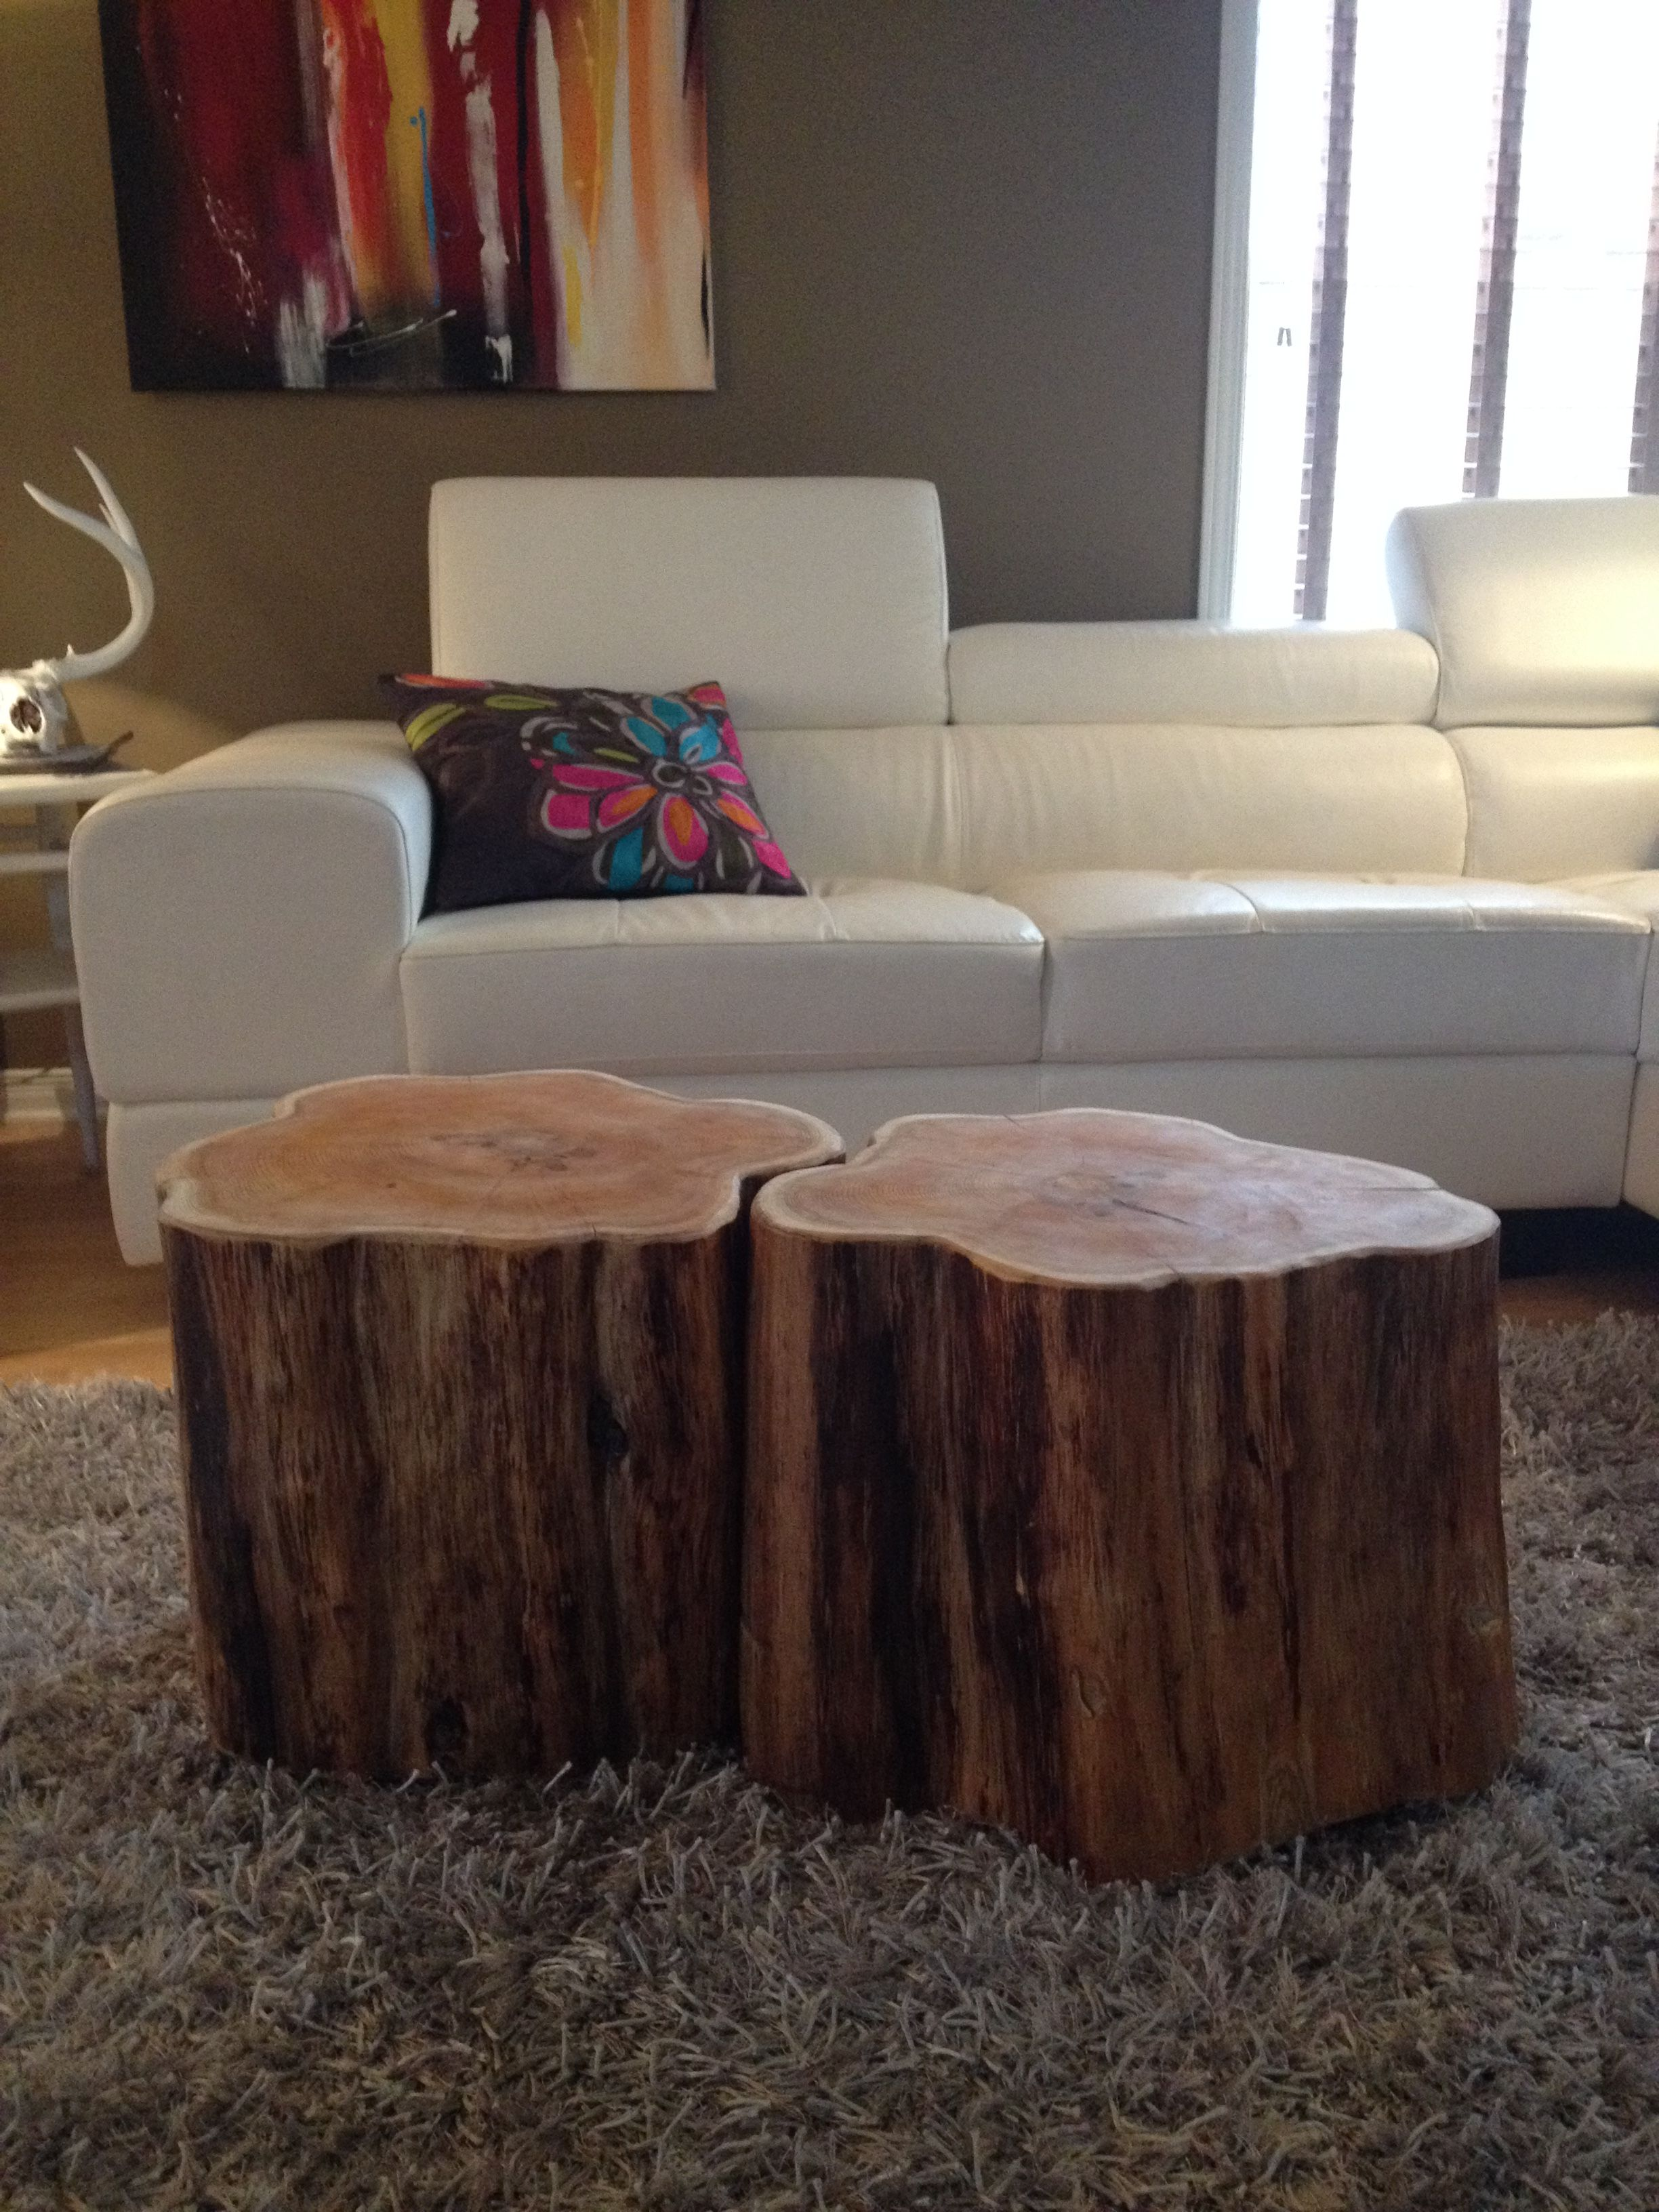 Stump Coffee Tables Serenitystumps Tree trunk tables Stump